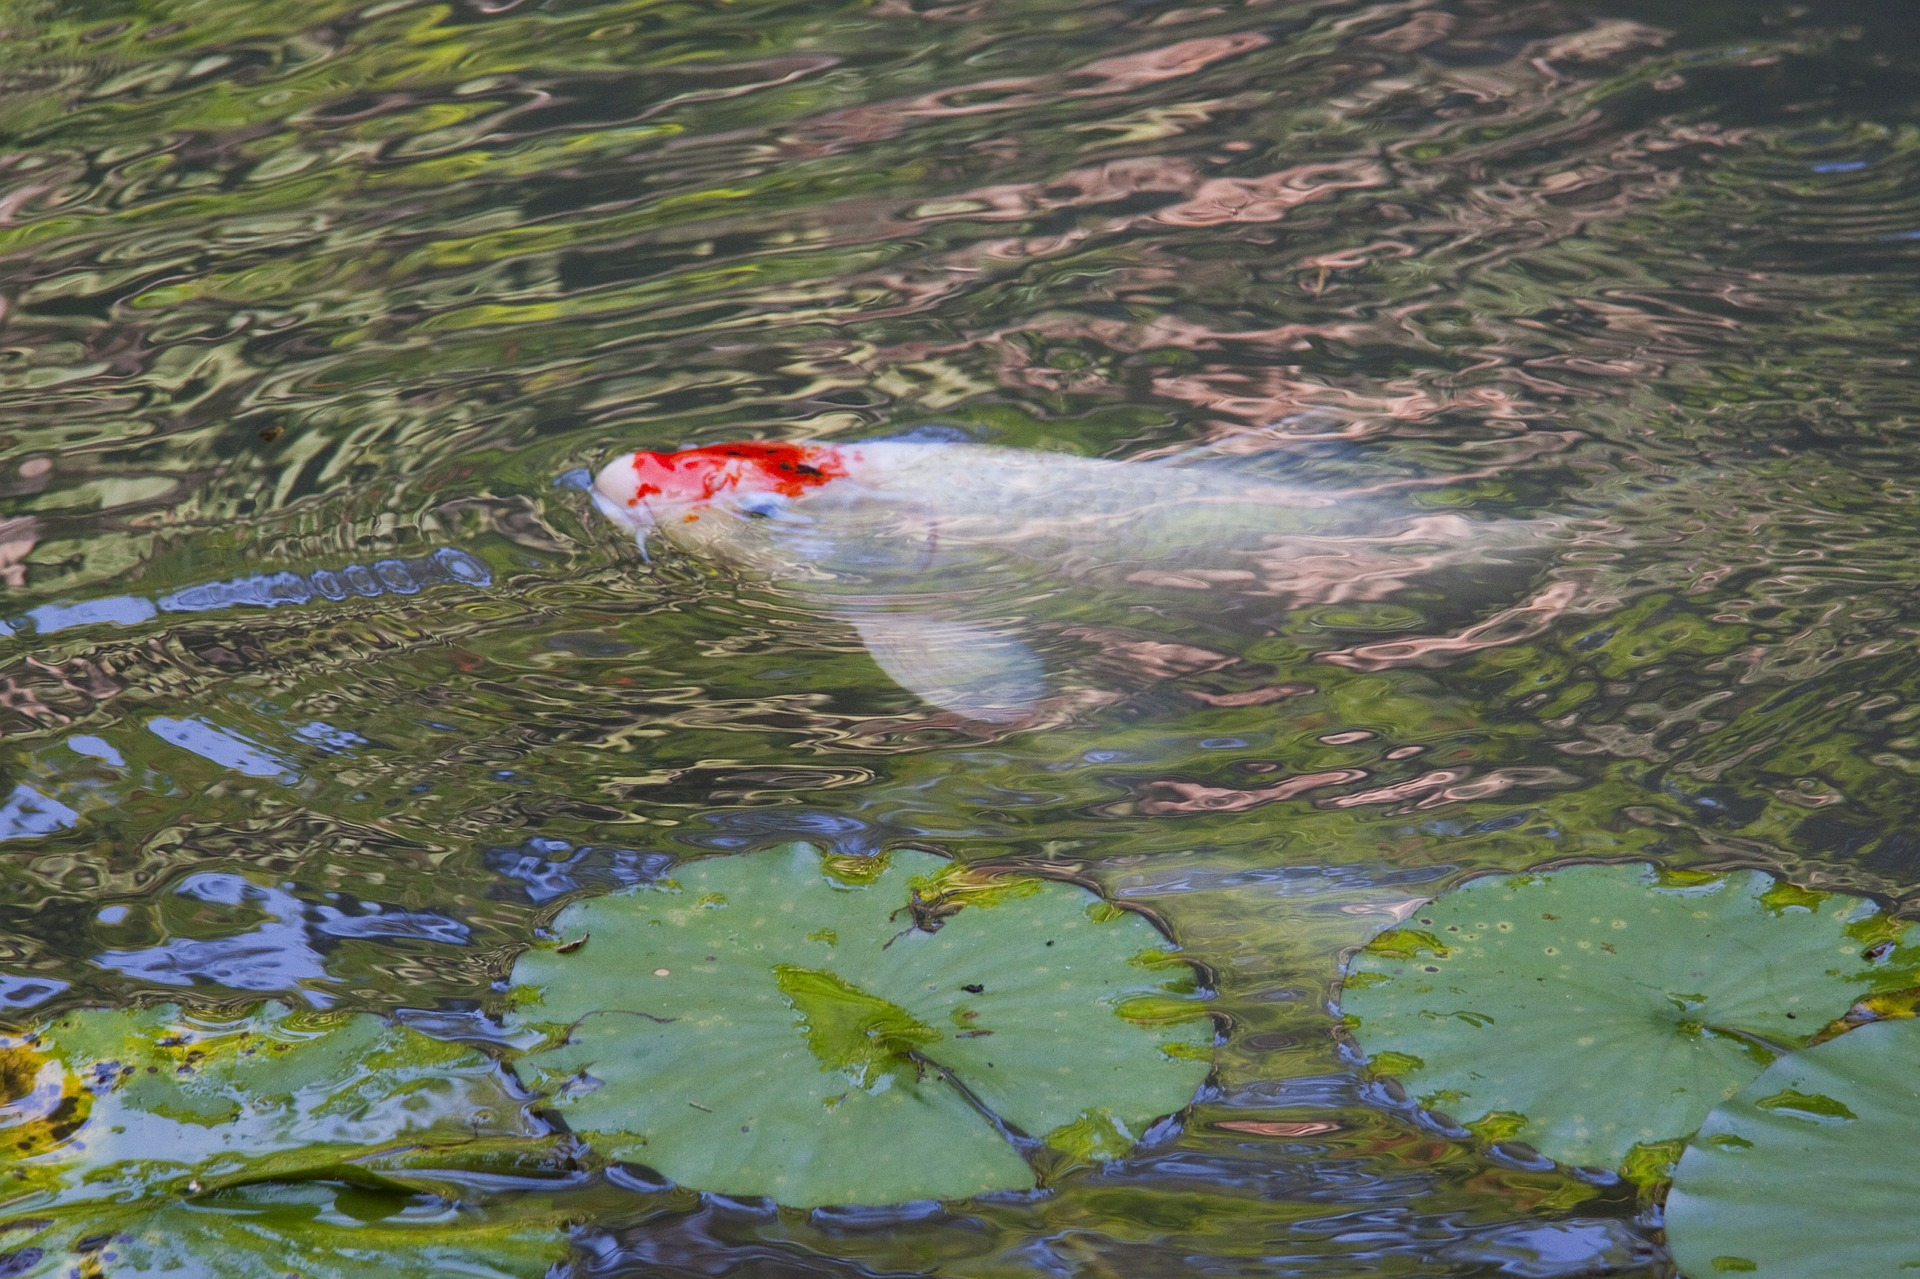 Backyard aquaculture raise fish for profit worldwide for Keeping koi carp